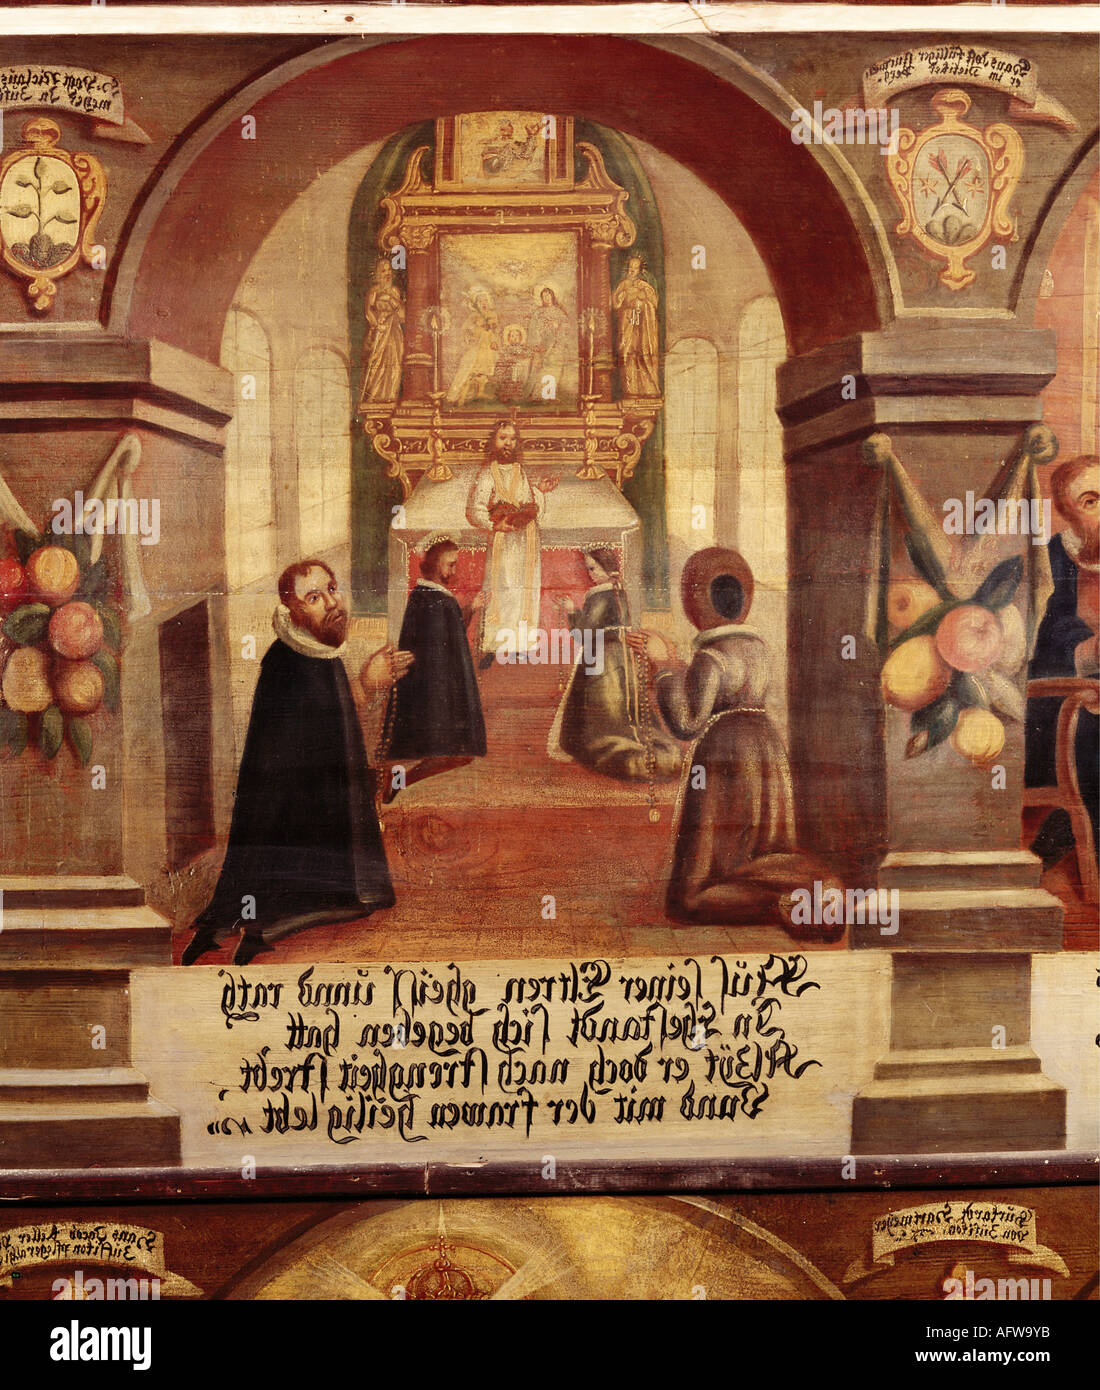 Nicholas of Flue, 1417 - 21.3.1487, Swiss hermit, ascetic, mystic, Saint,  wedding, painting, 1677, Emmaus chapel, Bremgarten, , Additional-Rights-Clearances-NA - Stock Image